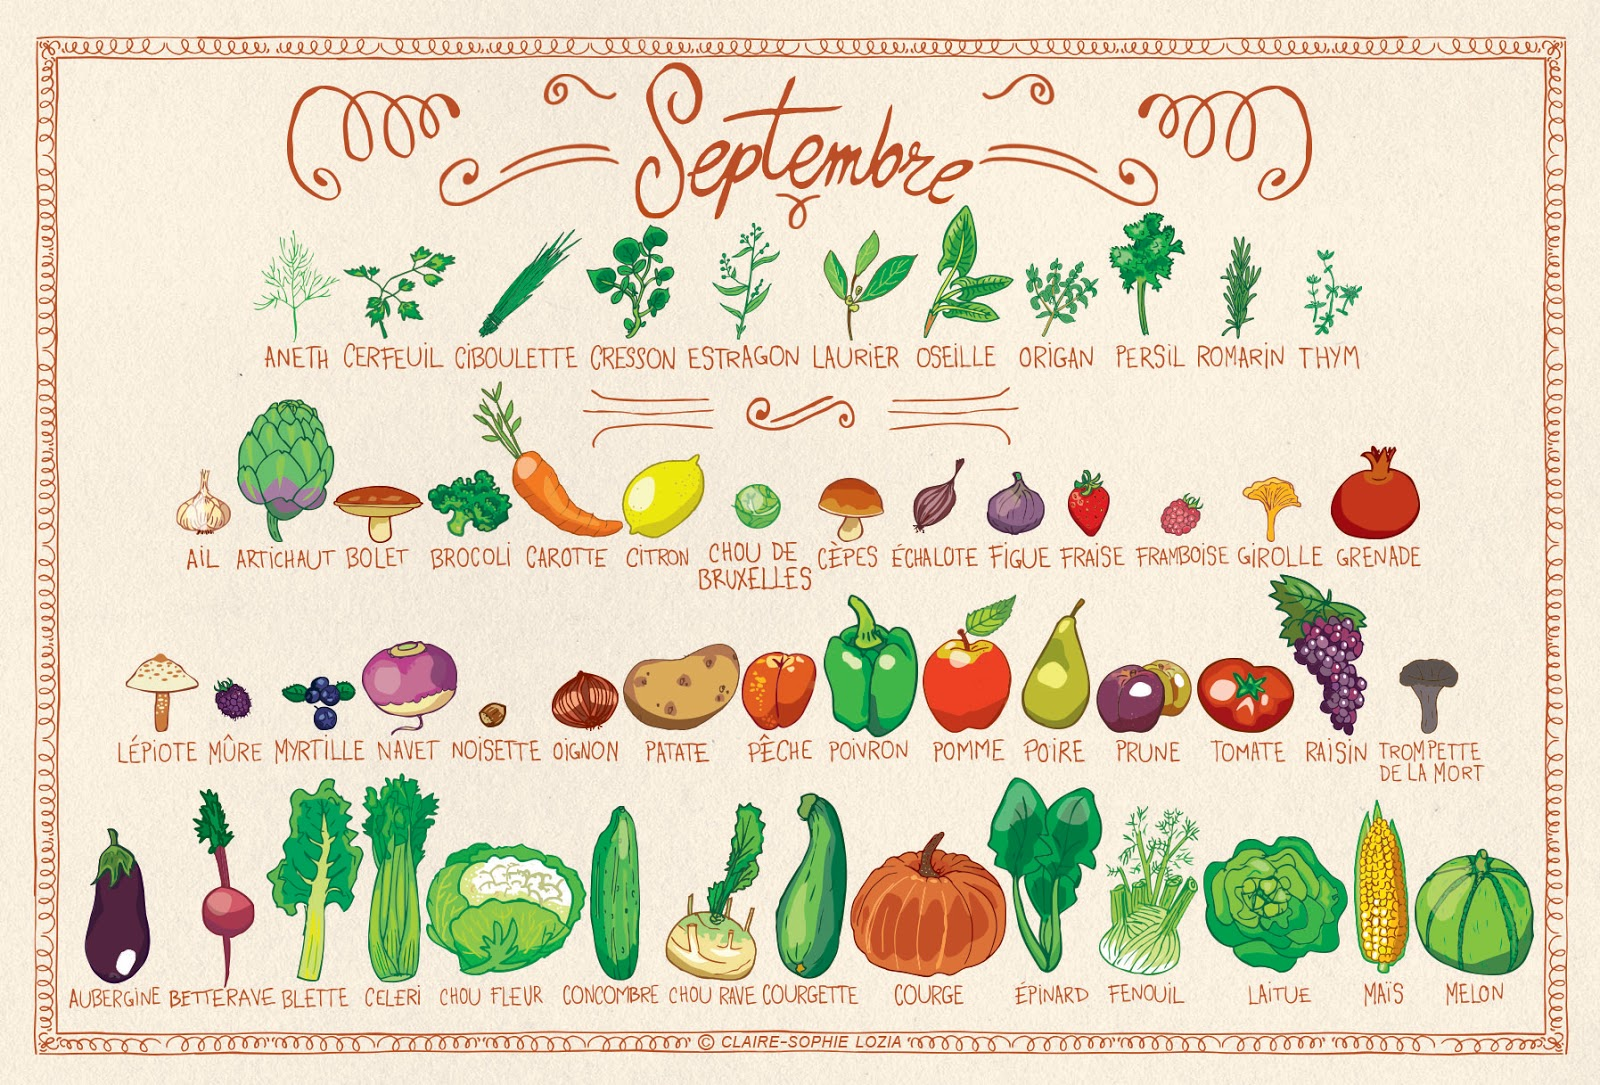 Fruits et légumes de septembre